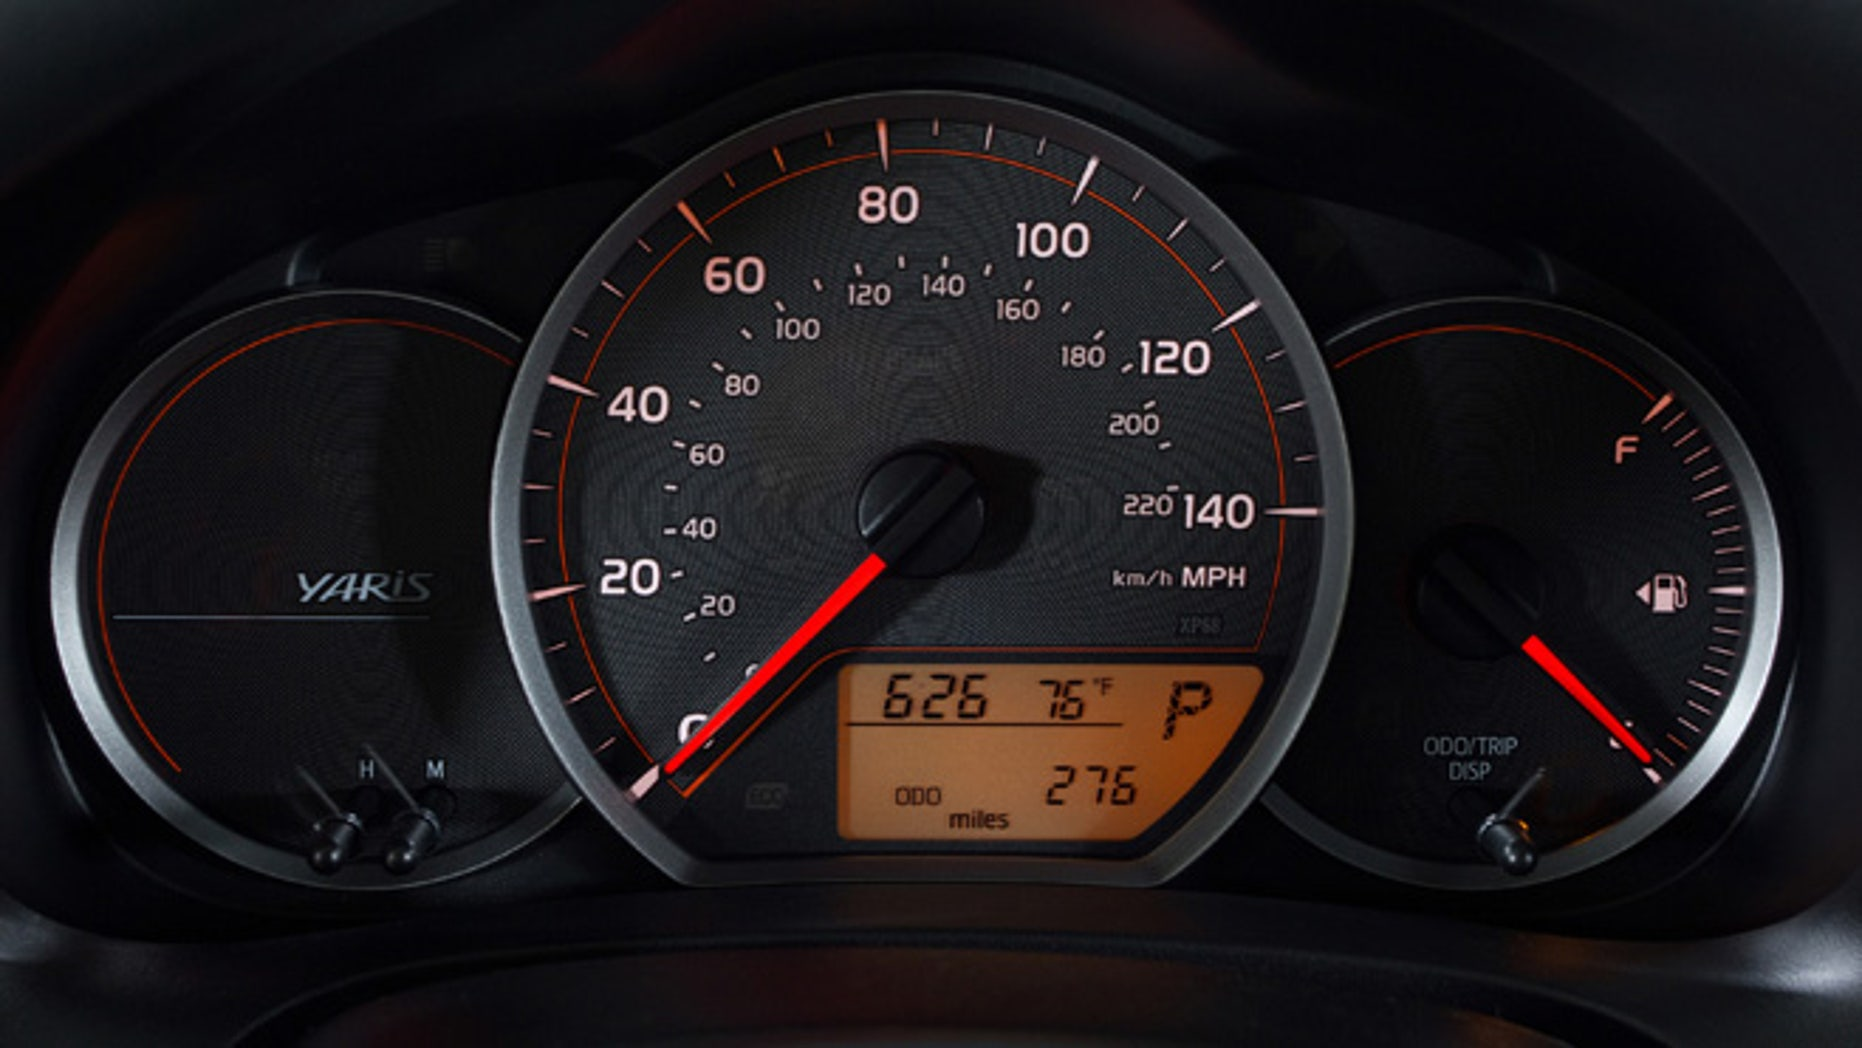 Speedometer top speed often exceeds reality | Fox News